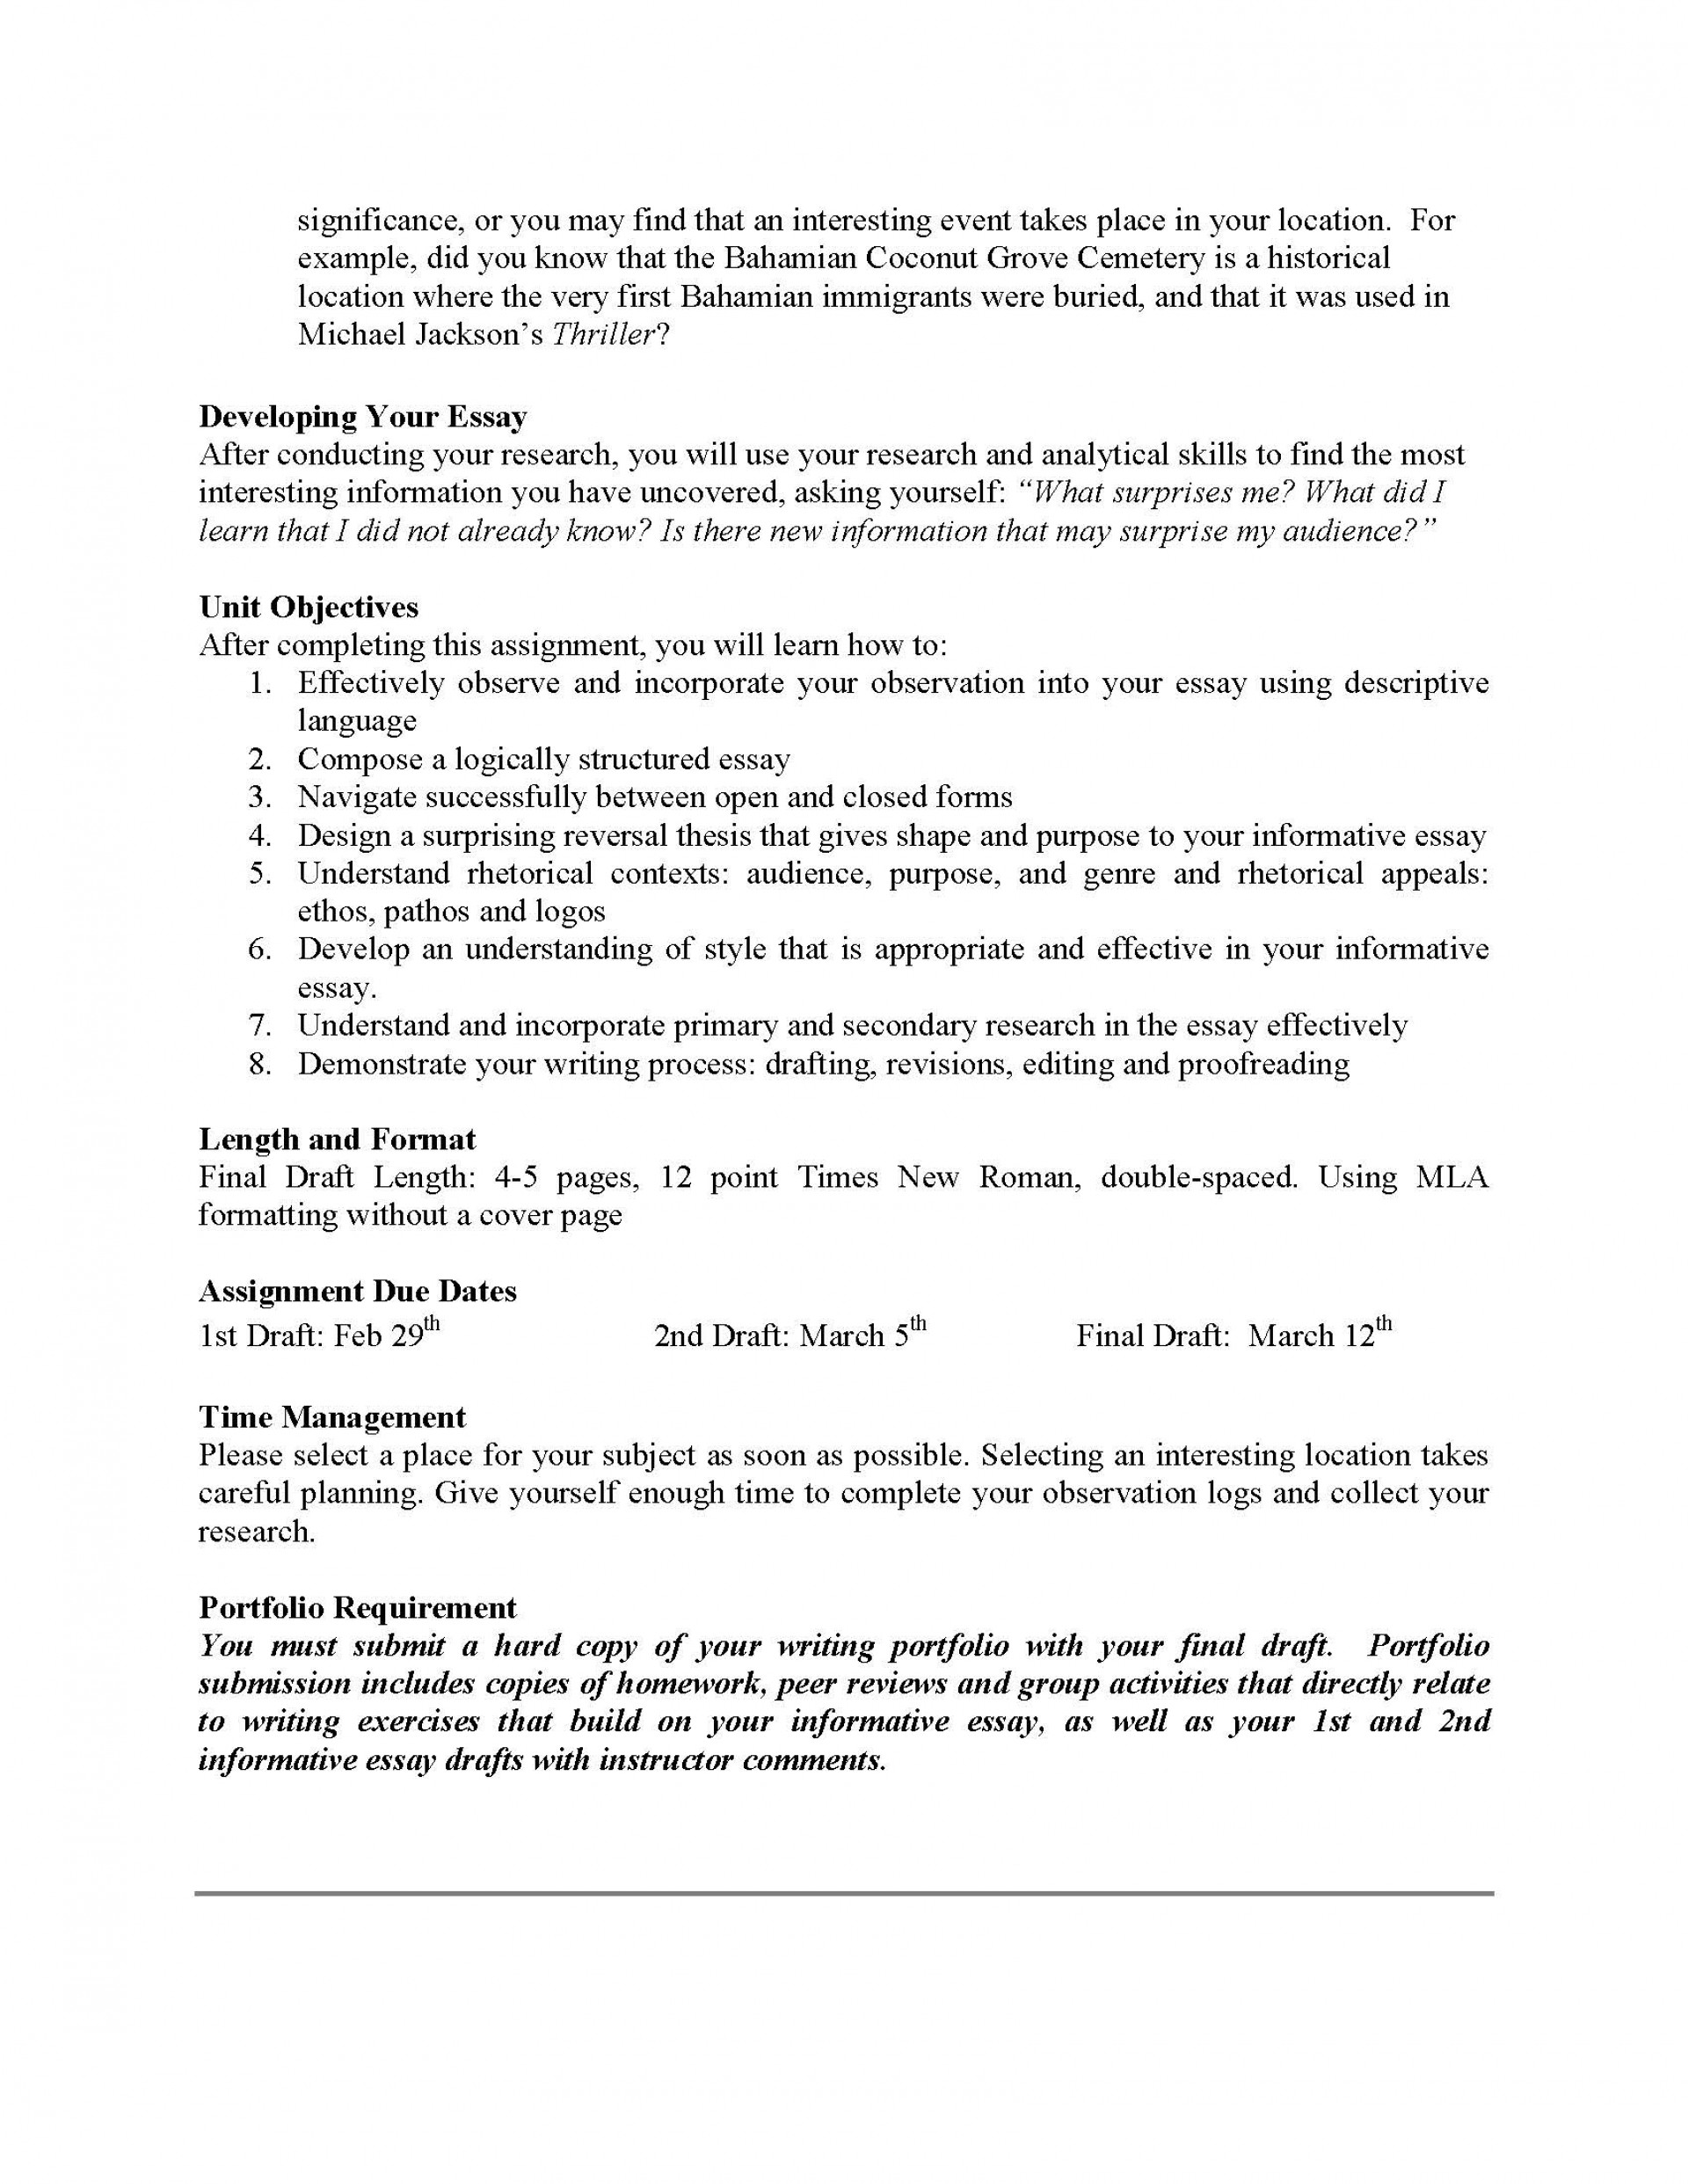 026 Informative Essay Unit Assignment Page 2 How To Write An Explanatory Singular Expository Middle School Introduction 1920